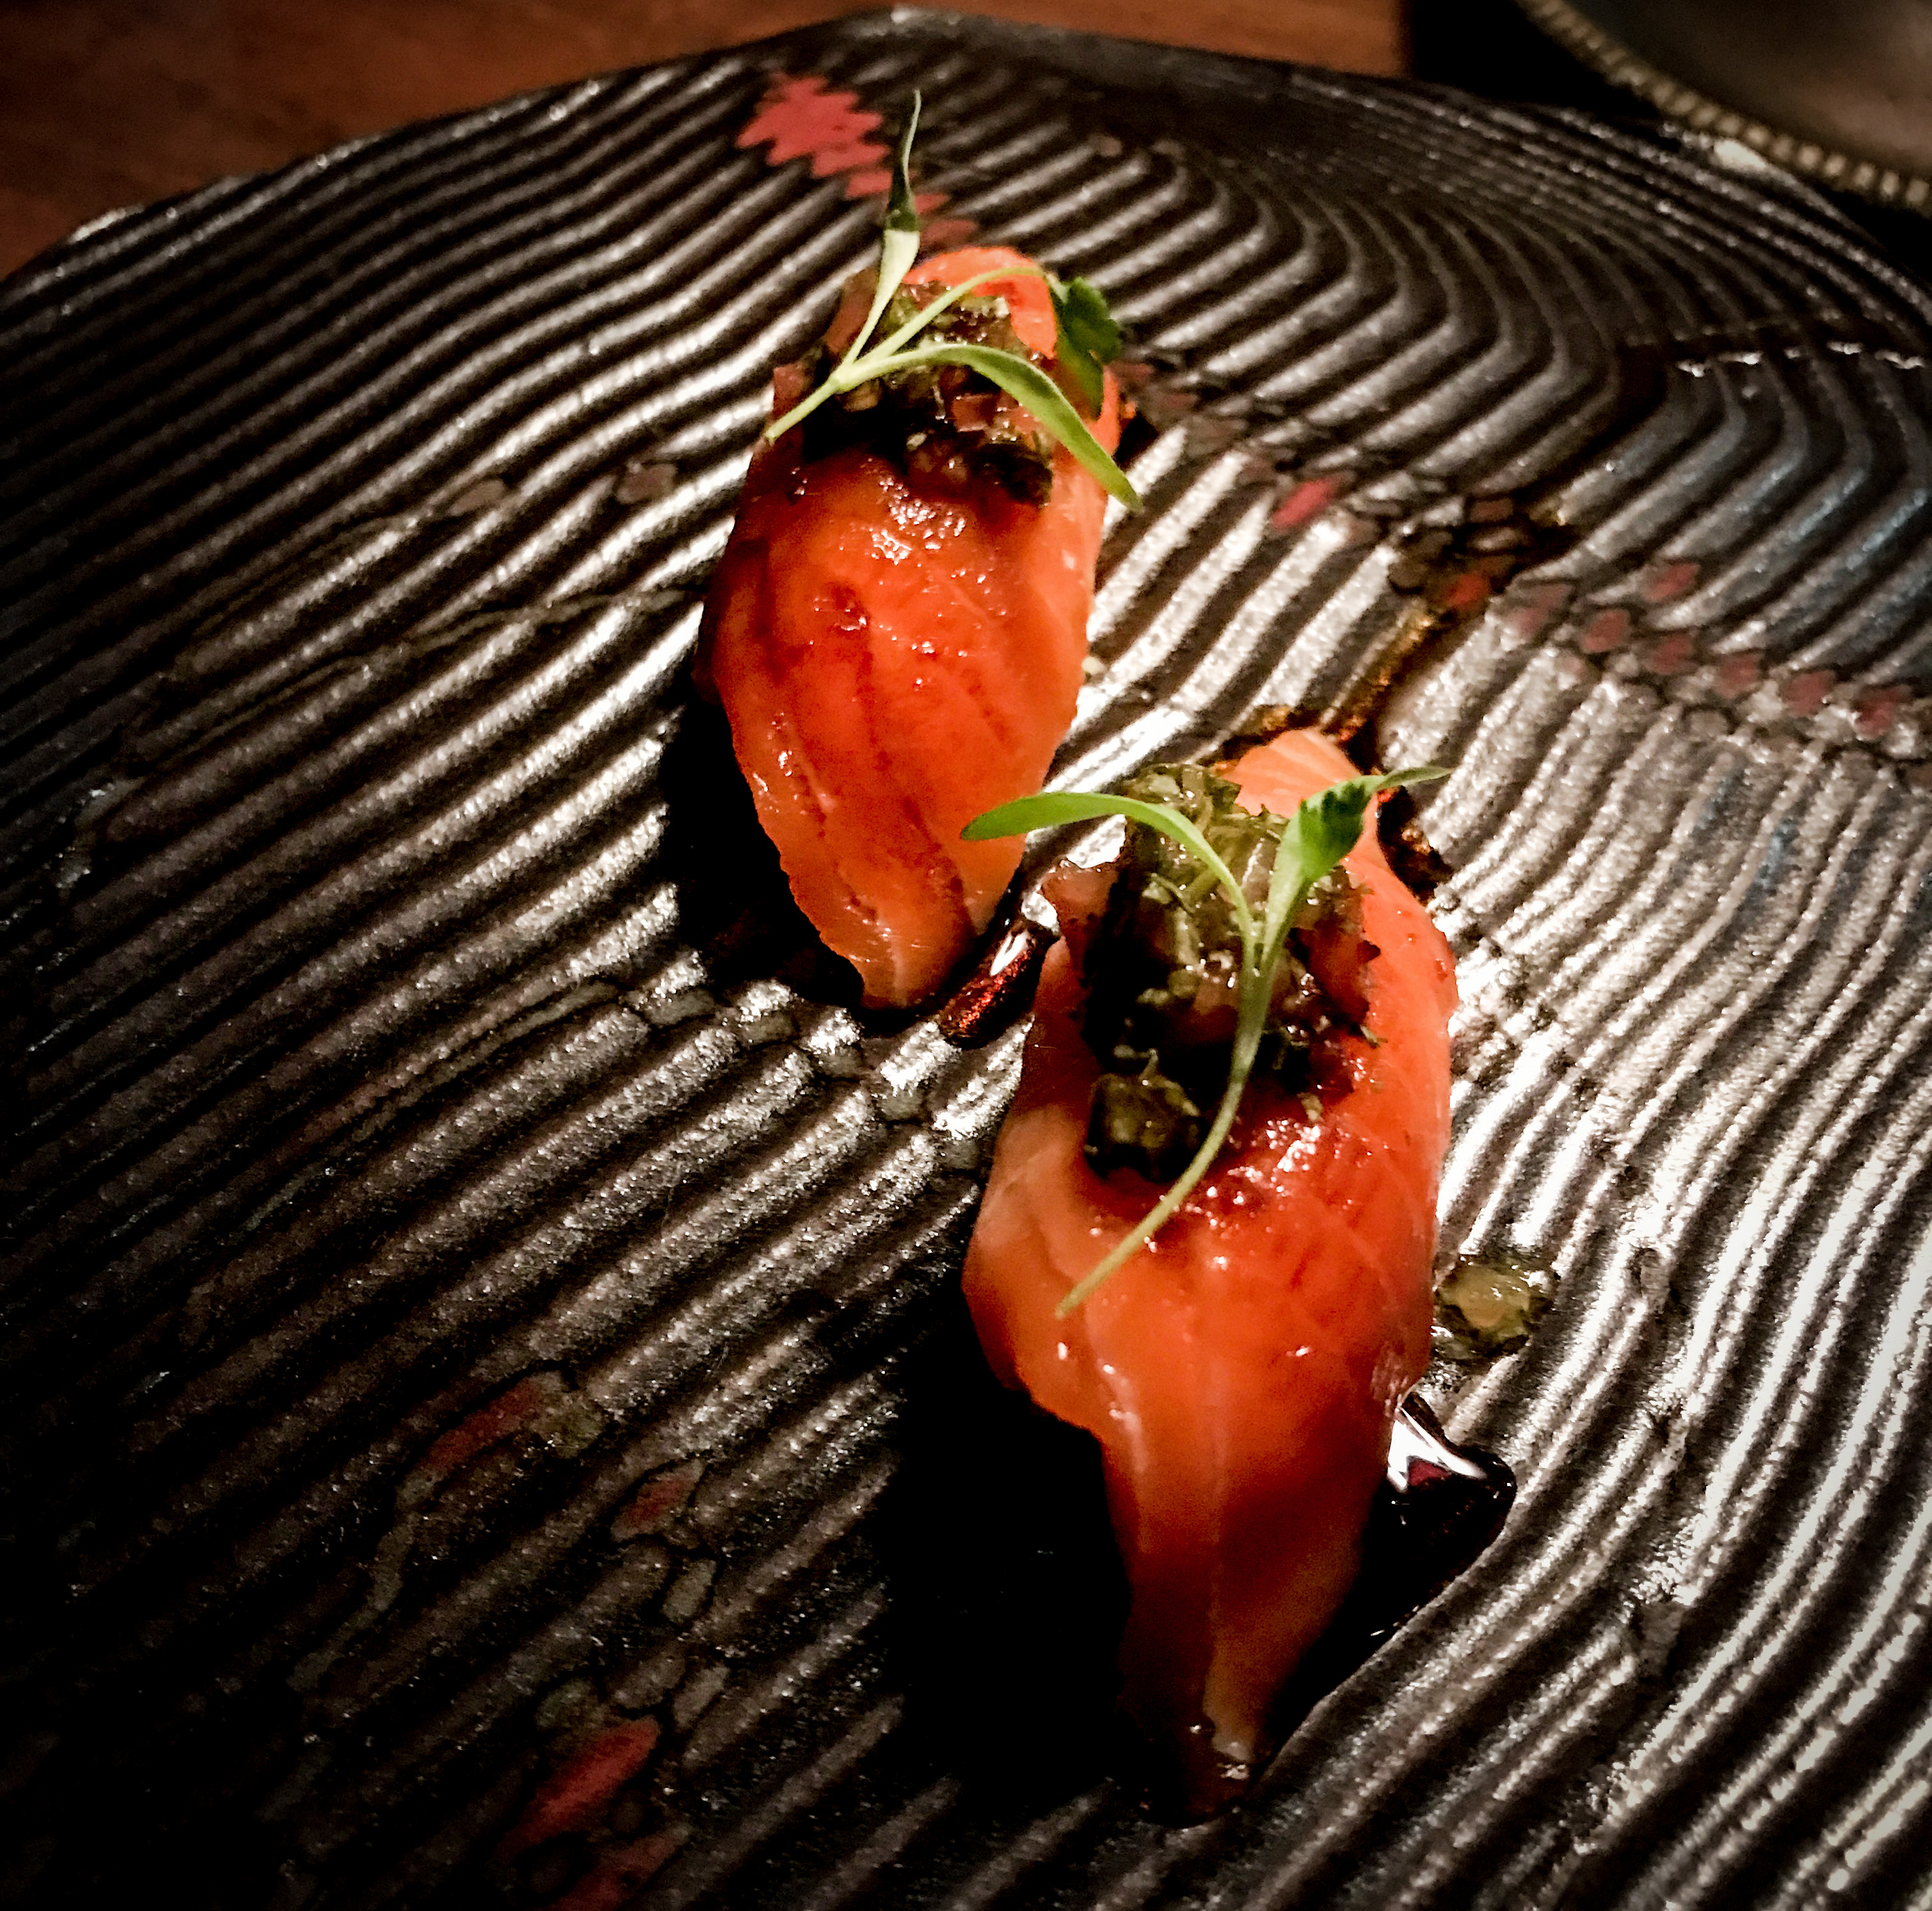 The vibrant color and butteriness of this ora king salmon was positively stunning. Garnished with a Vietnamese coriander salsa and dashi caramel - oh my!